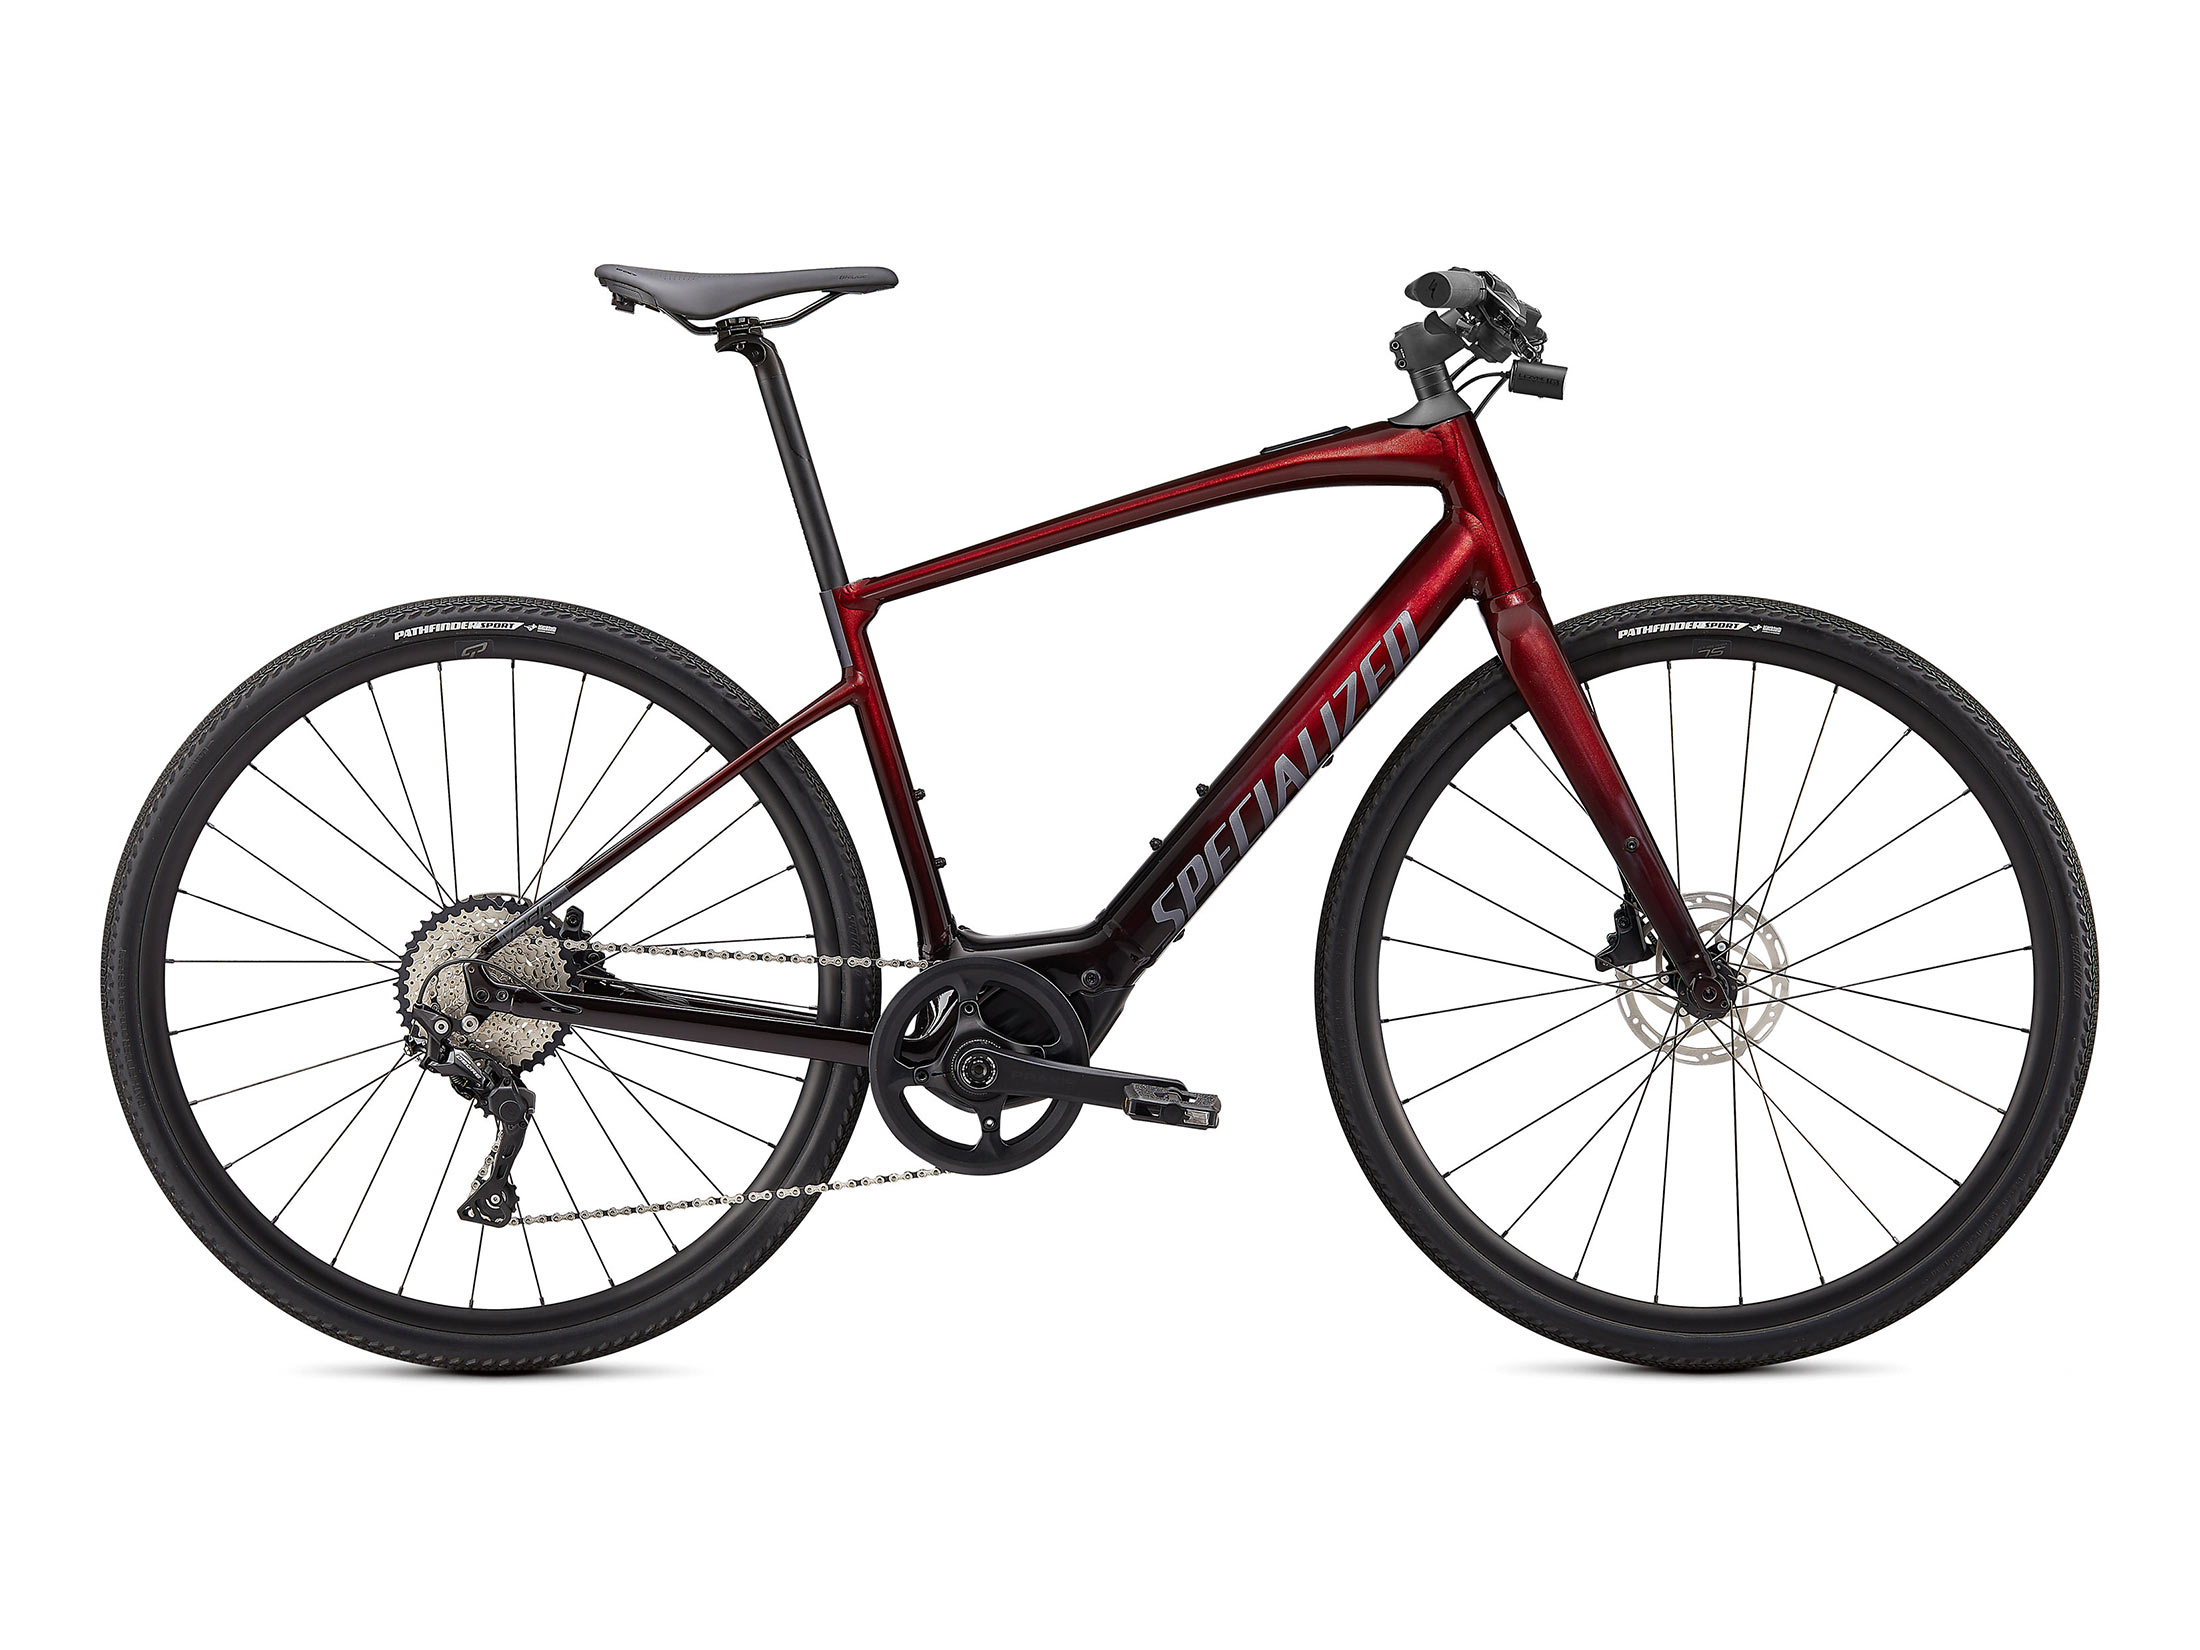 Ηλεκτρικό Ποδήλατο Specialized Turbo Vado SL 4.0 - Crimson Red Tint / Black Reflective